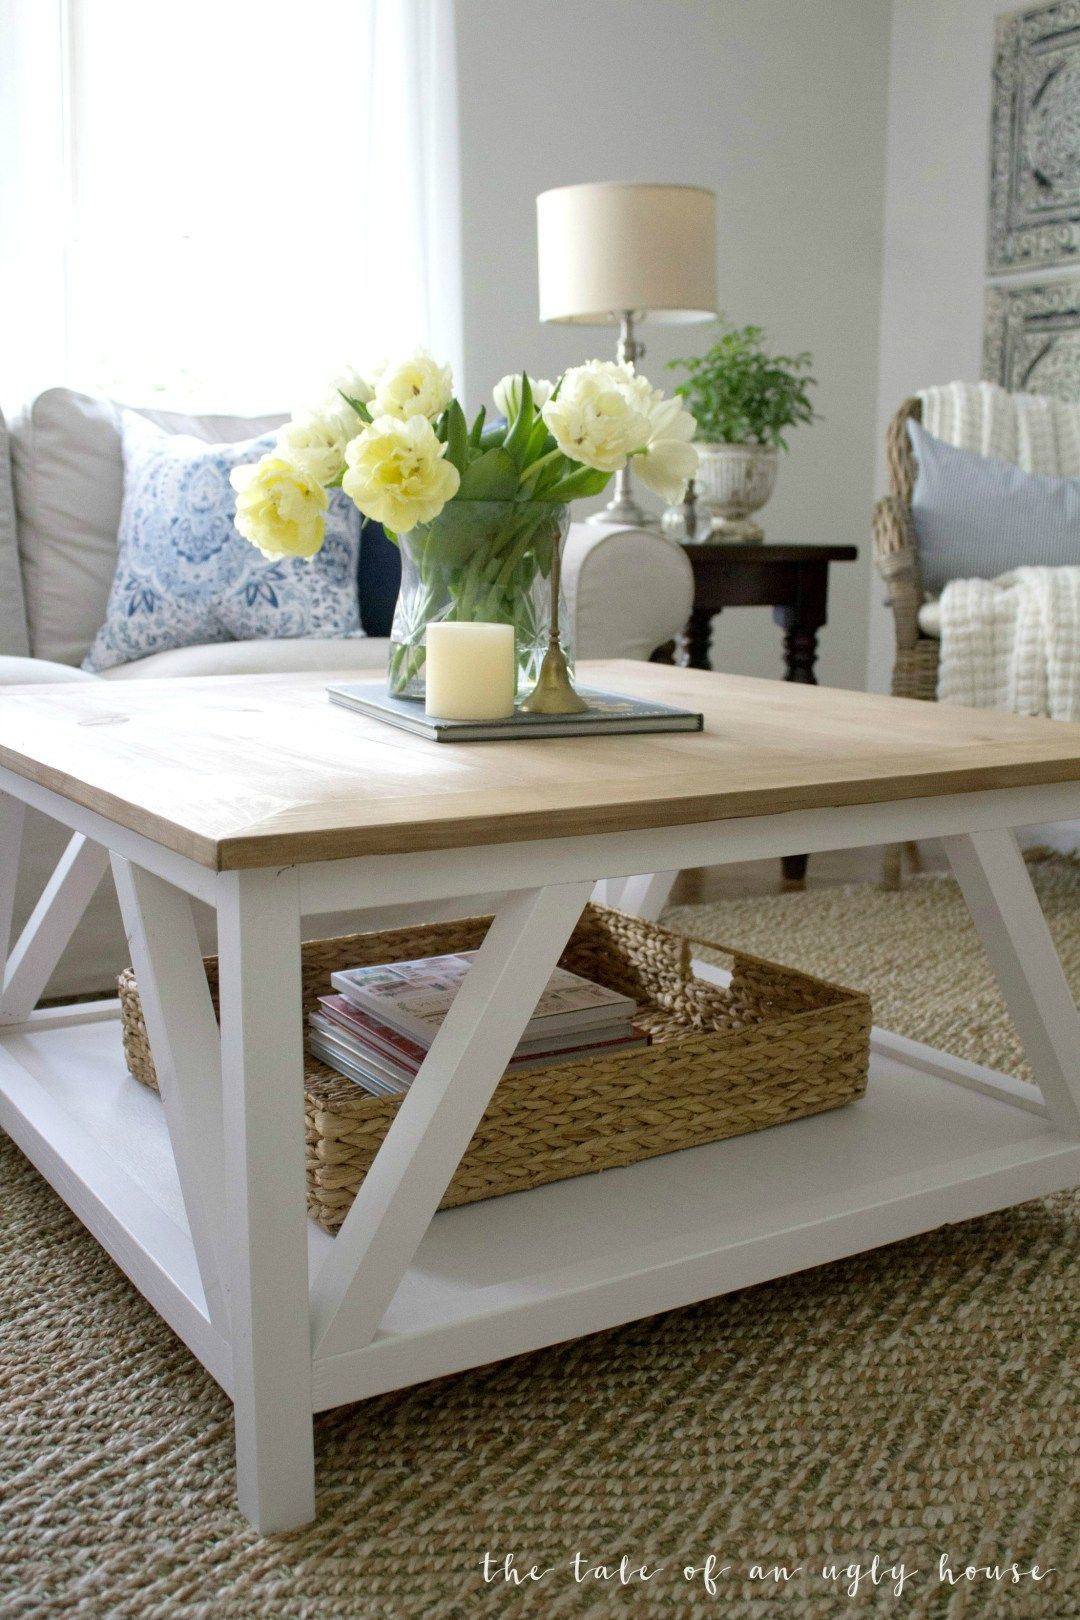 diy modern farmhouse coffee table house deco decorating end decor square sincerely marie designs oak furniture desk log legs homesense bedroom sets sofa black tall lamps light